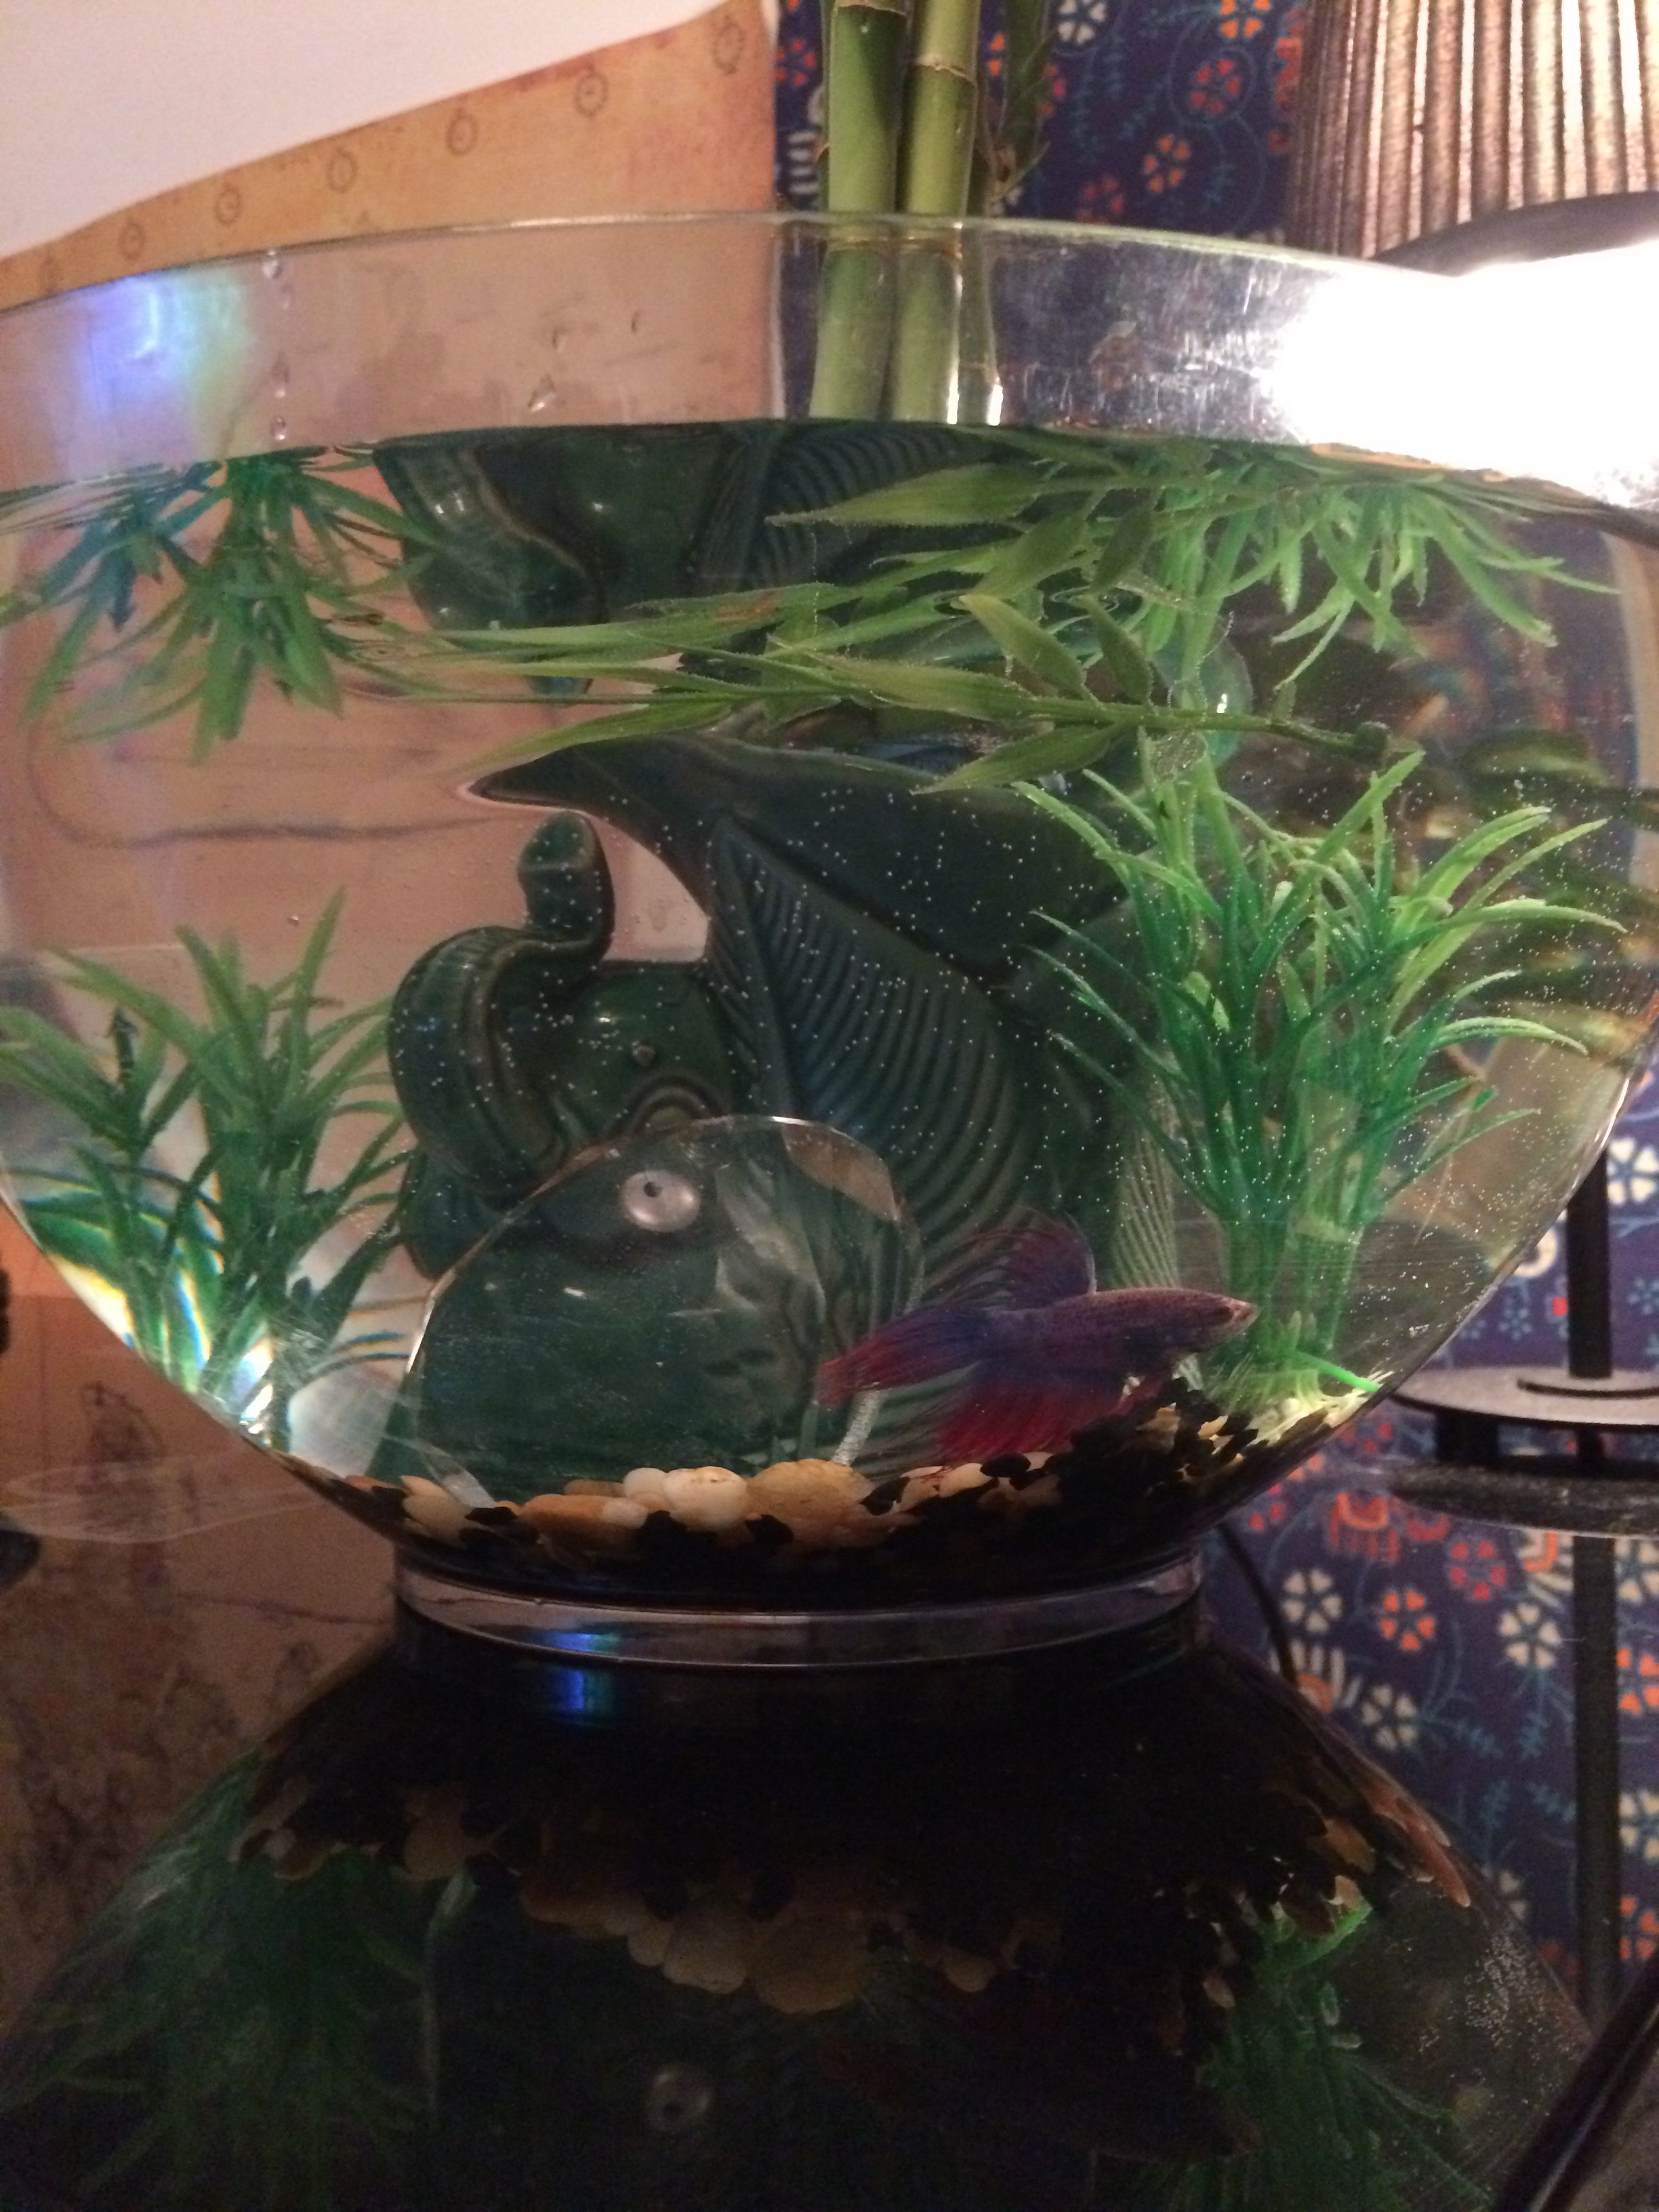 Diy betta pond 2 gallon or more bowl A heater at least 10 watts 25